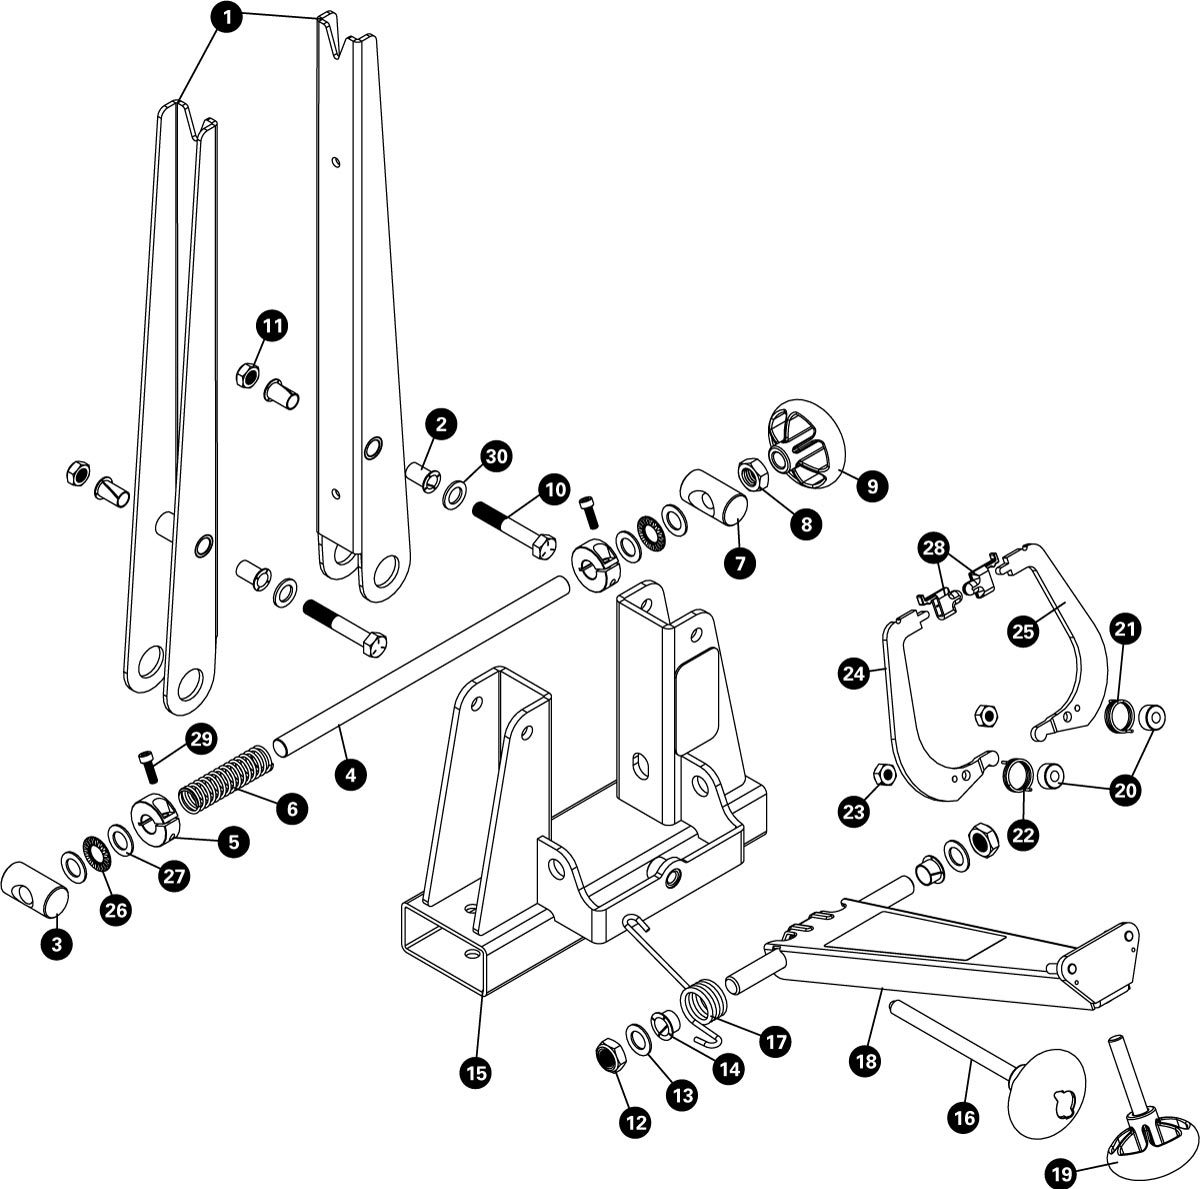 Parts diagram for TS-2.2P Powder Coated Professional Wheel Truing Stand, click to enlarge